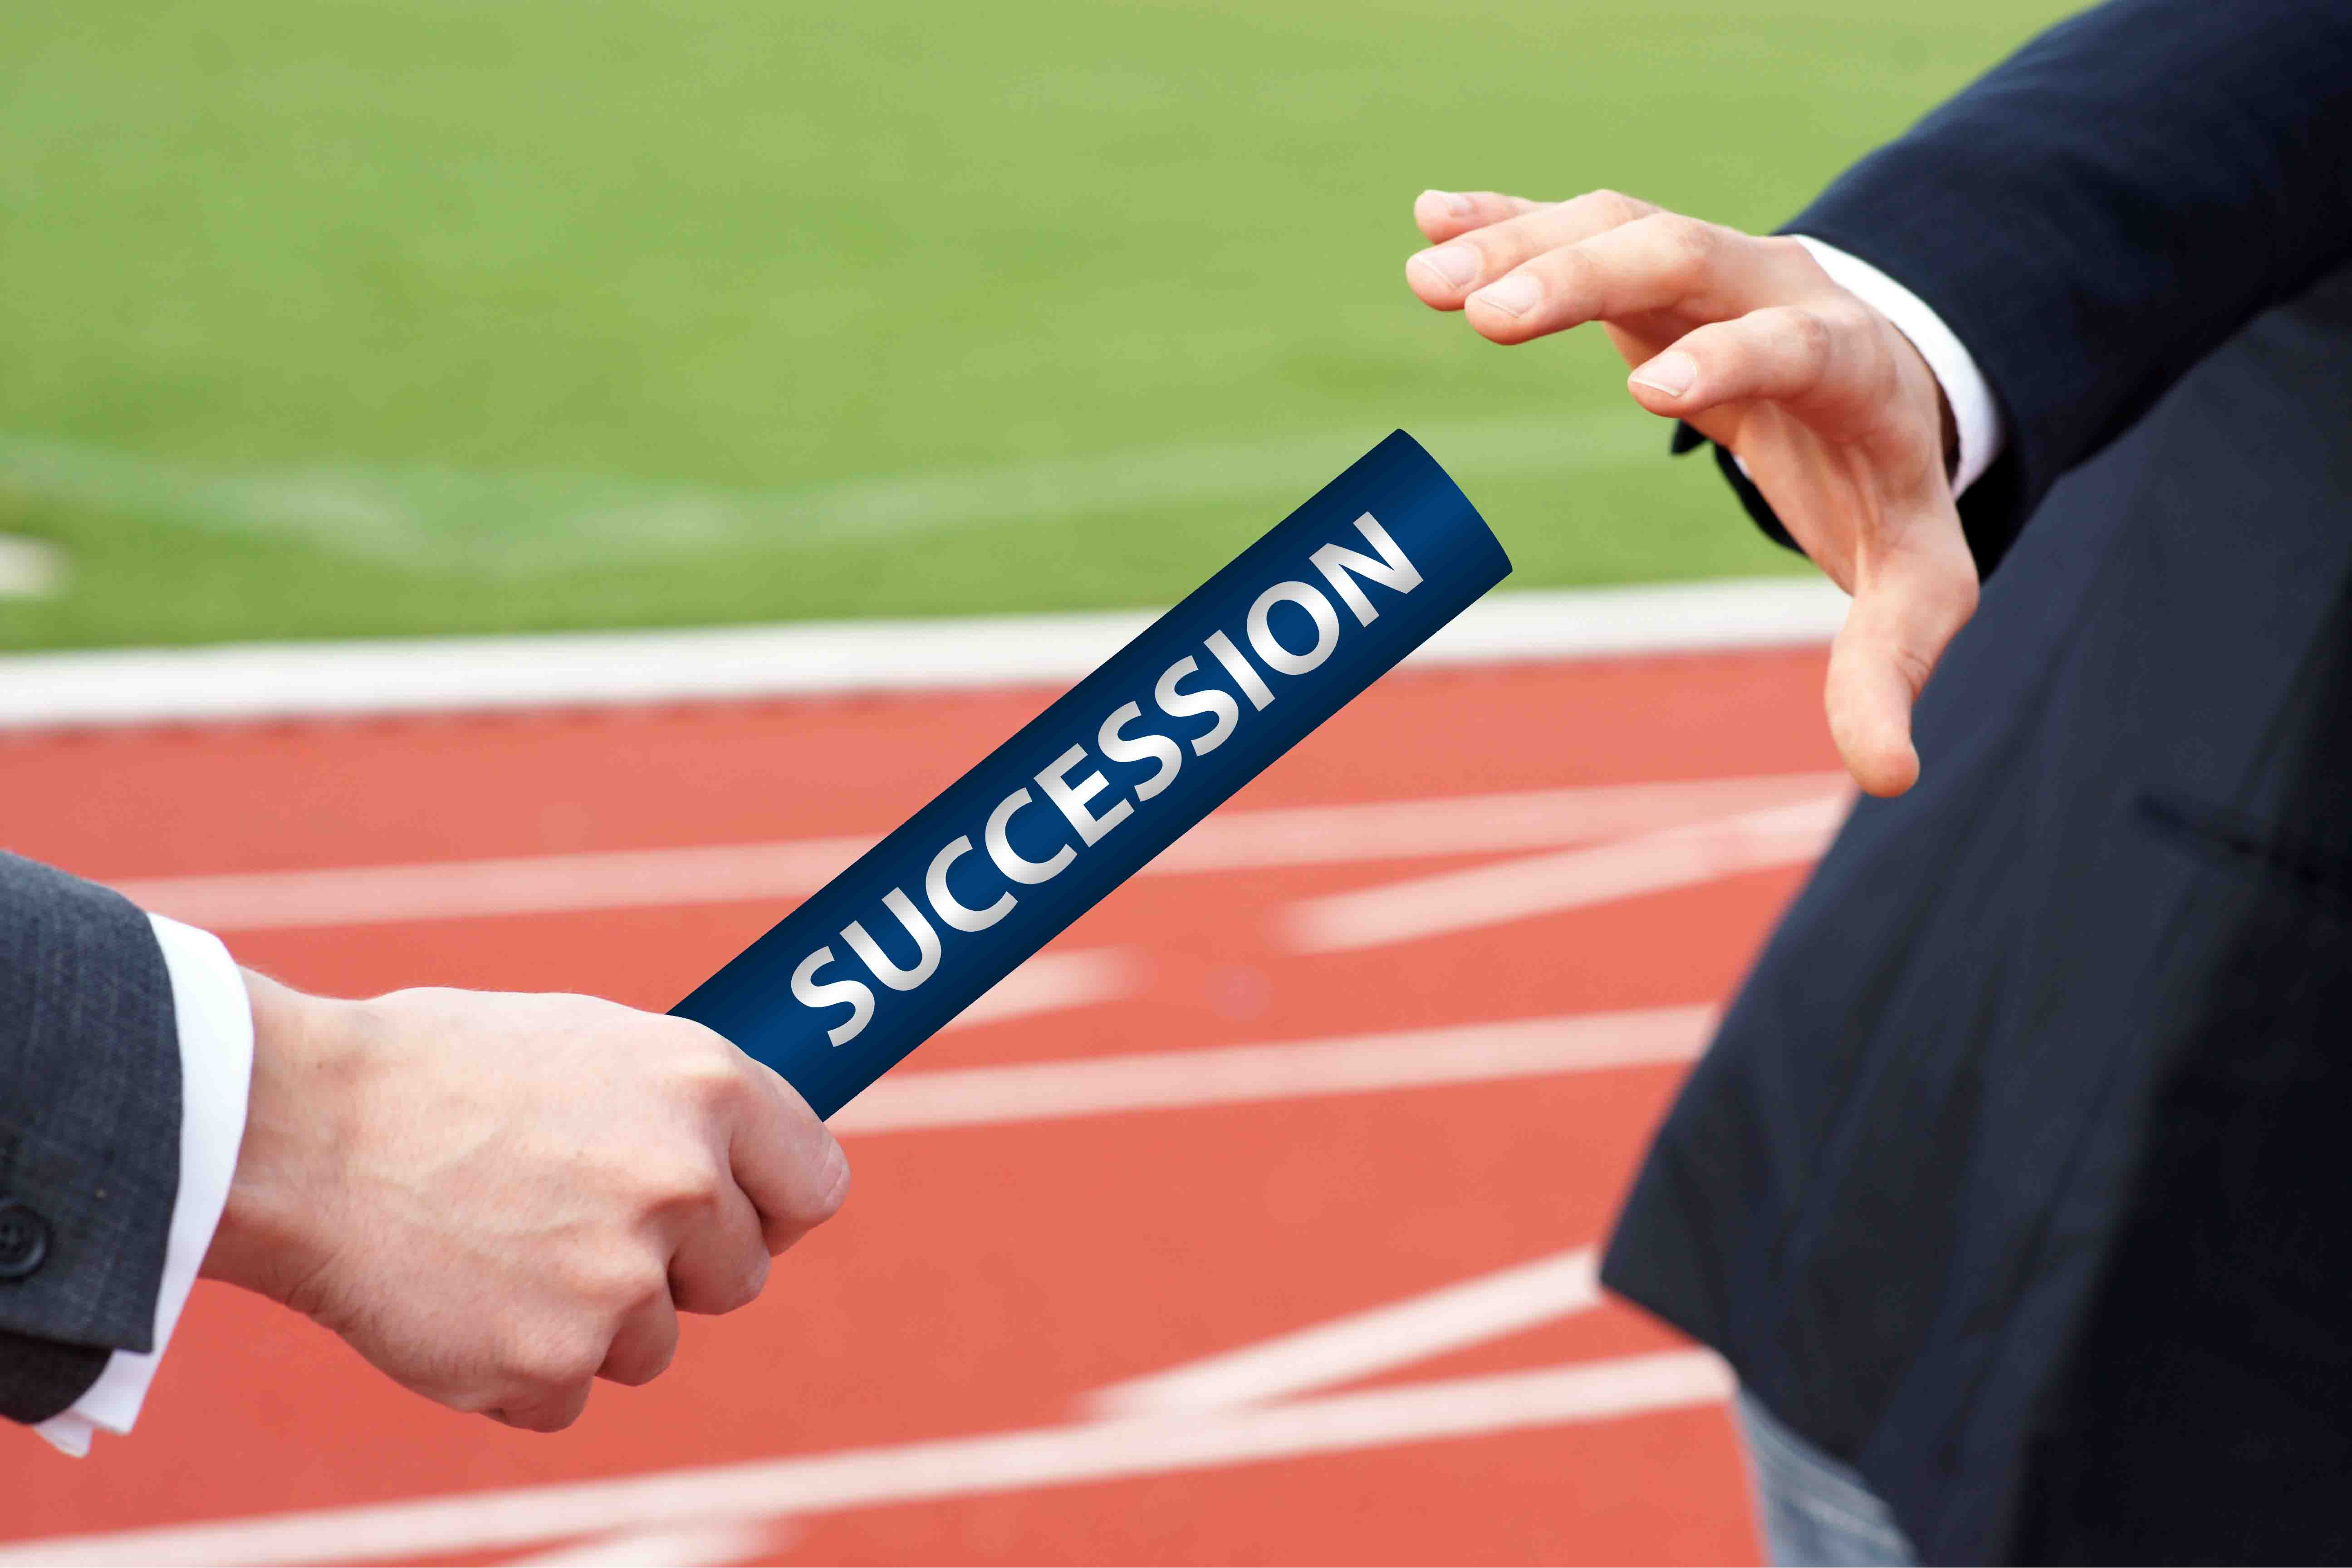 Succession Planning: Keeping Your Business in the Right Hands